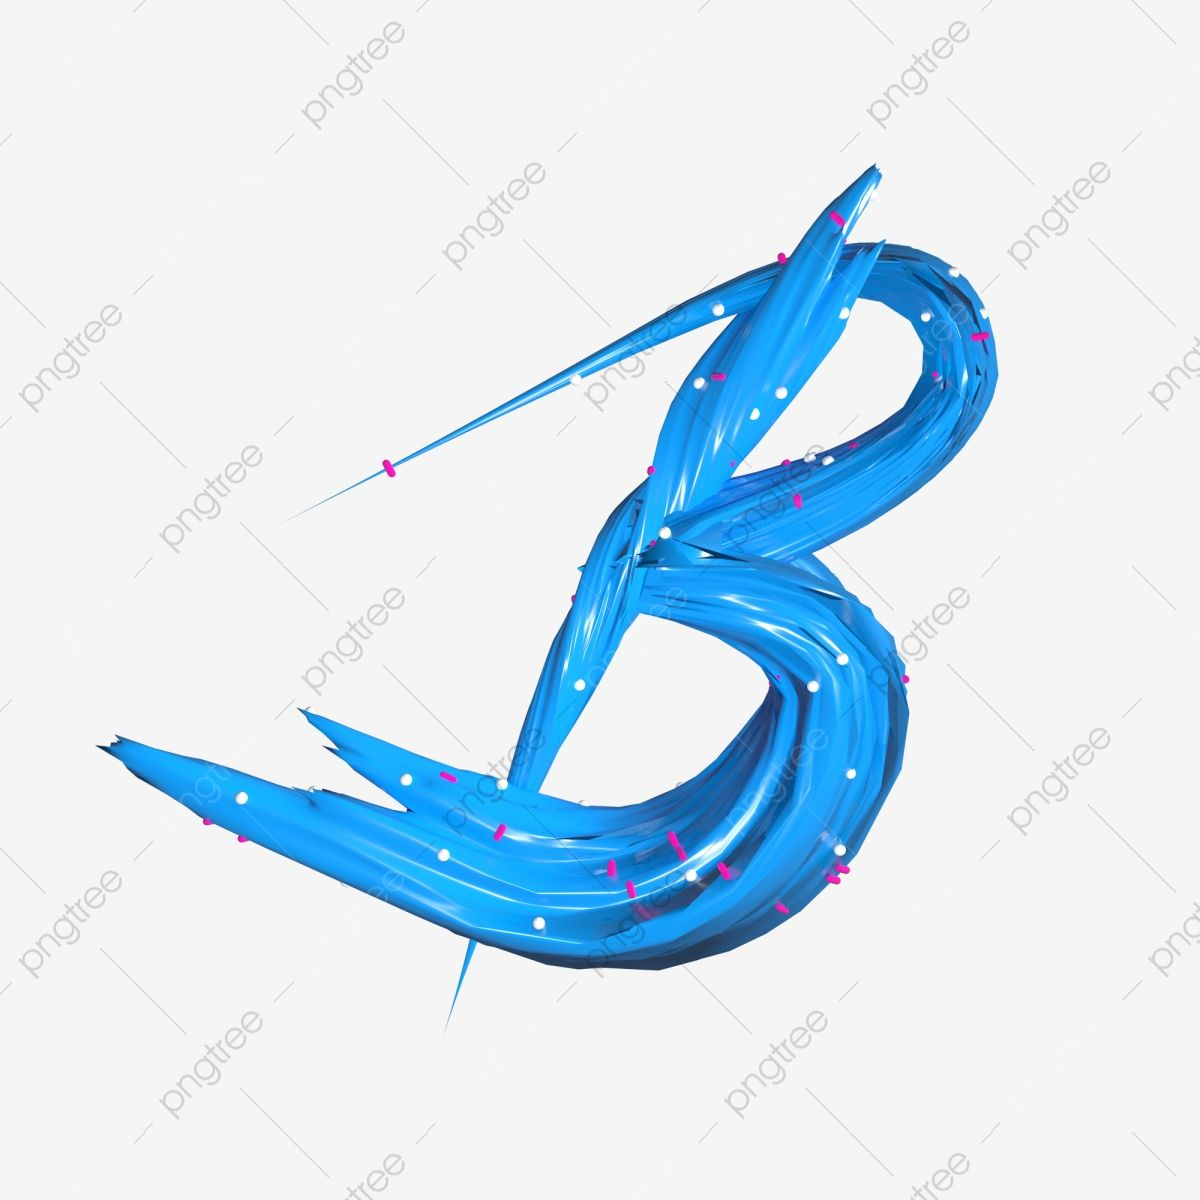 C4d Candy Letter B Material Letter 3d Candy Word B Png Transparent Image And Clipart For Free Download Candy Letters Lettering Letter B